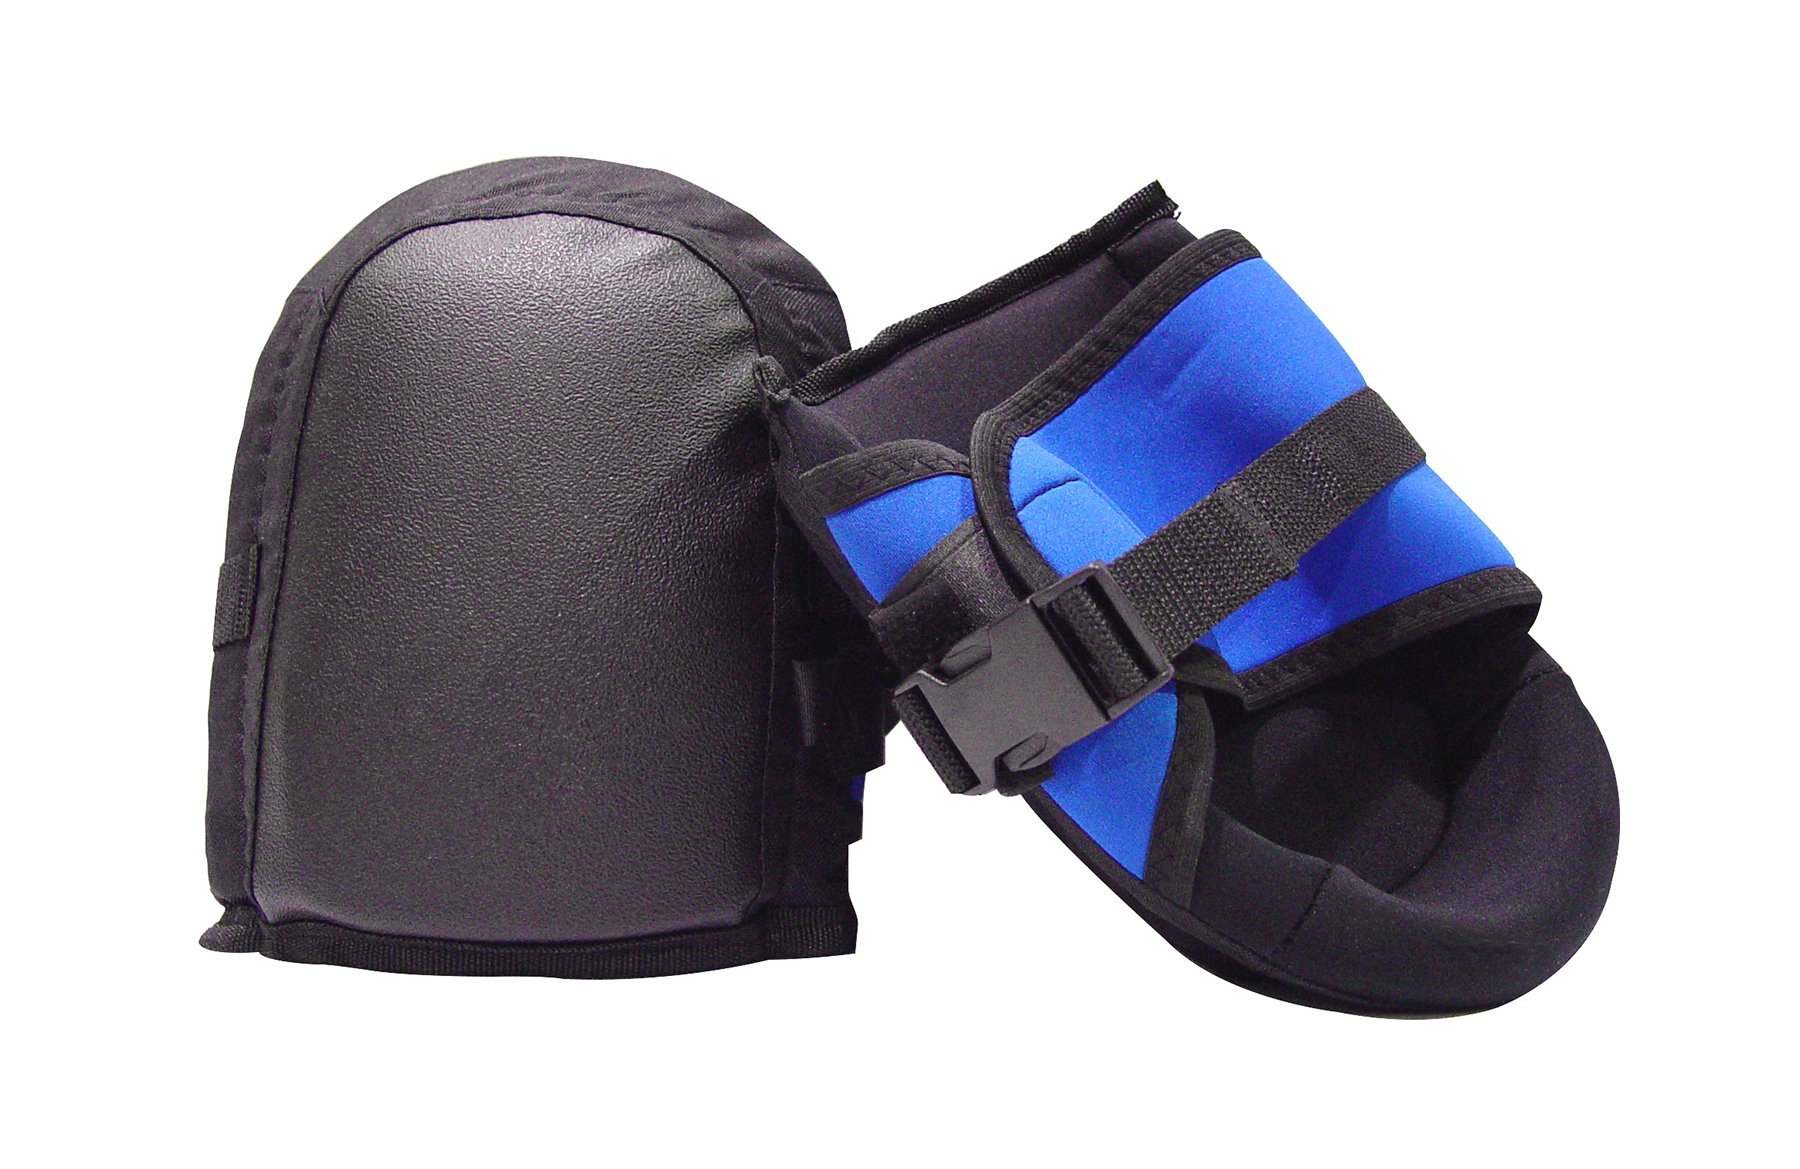 Nattco KP3555 Professional Quality Gel Knee Pad with Velcro Straps